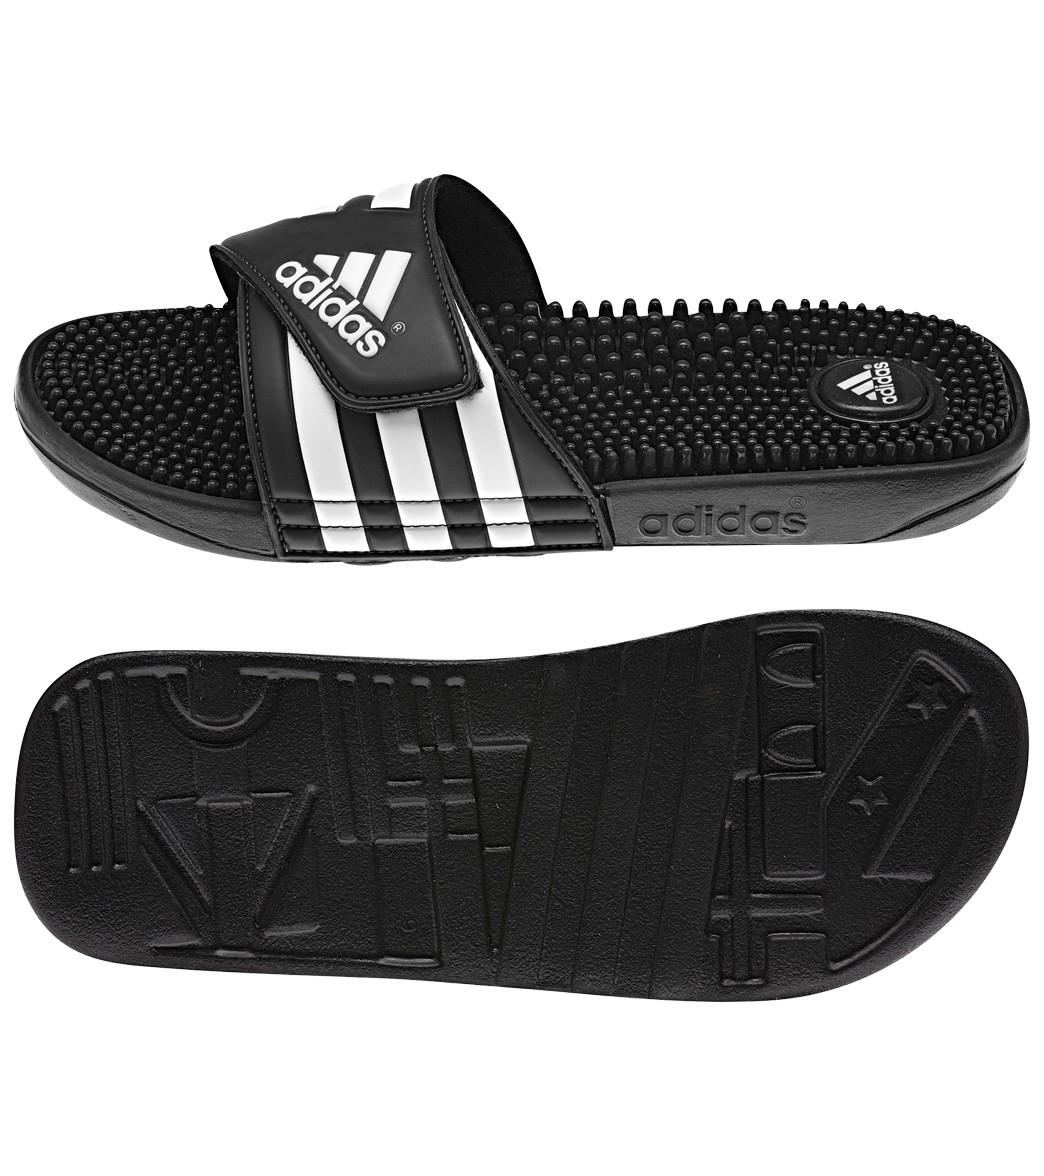 san francisco 5255d 789f1 Adidas Adissage Slide Sandals at SwimOutlet.com